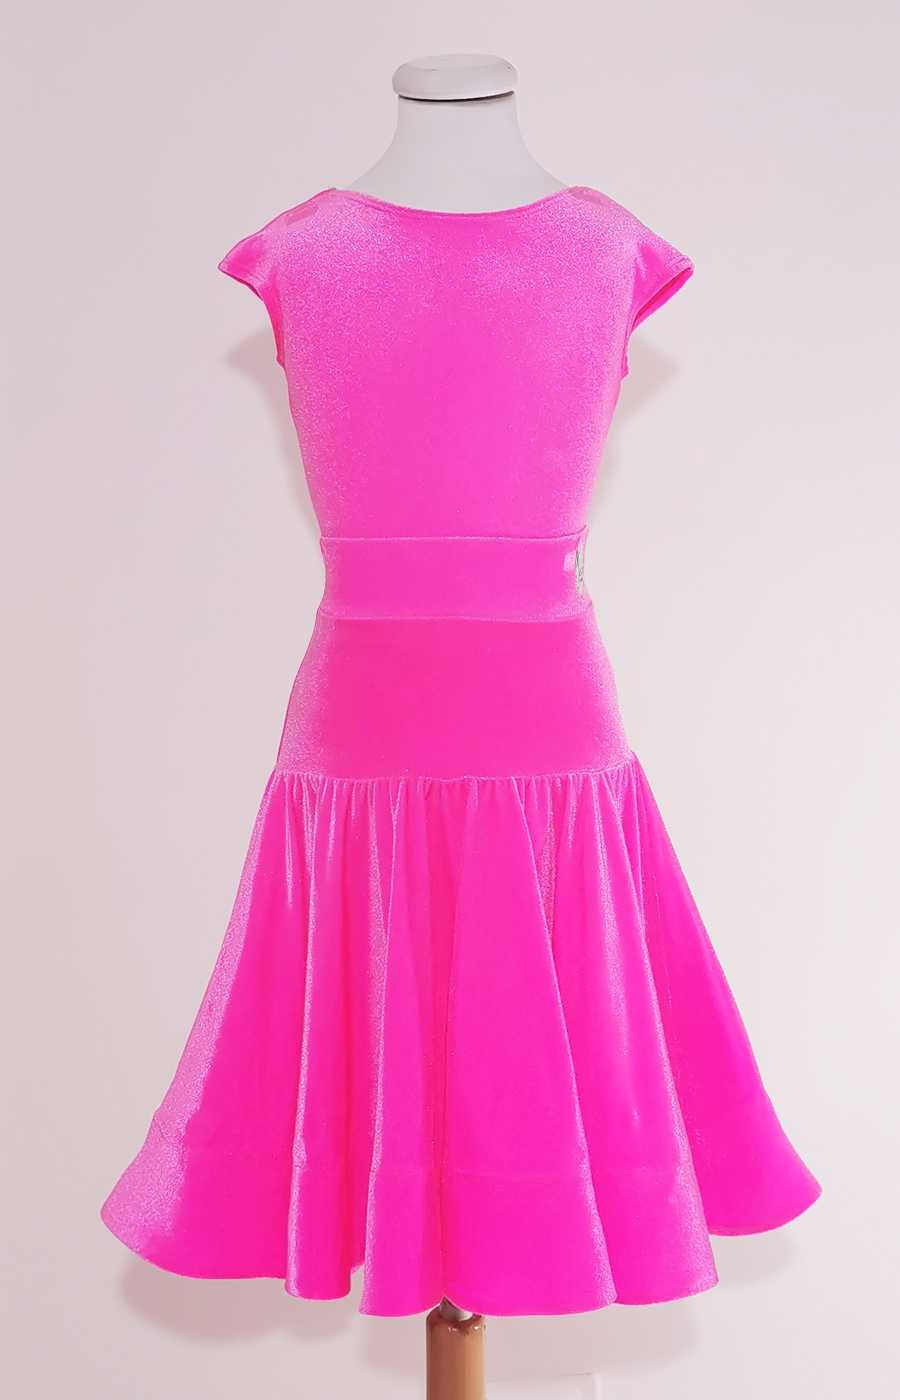 Pink fizz juvenile velvet dress